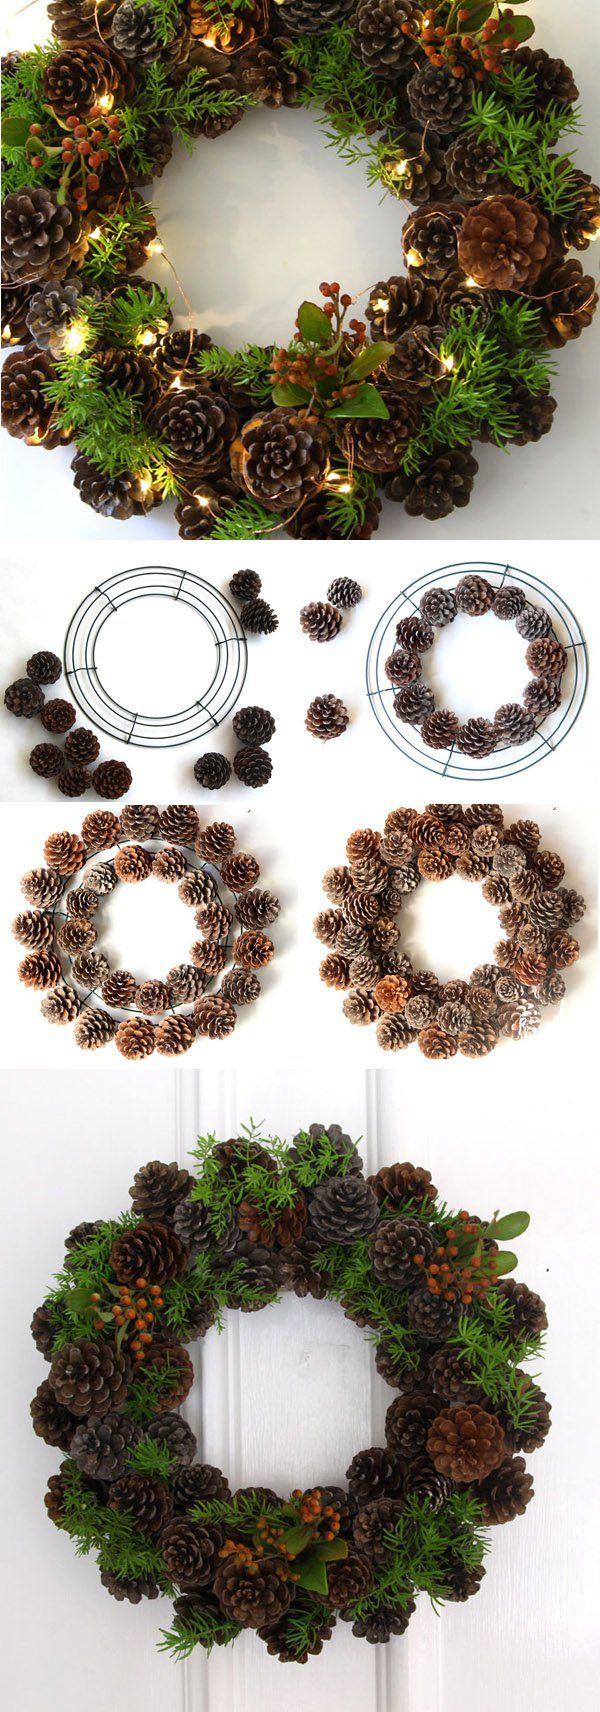 30+ wonderful diy christmas wreaths | pine cone, abundance and pine